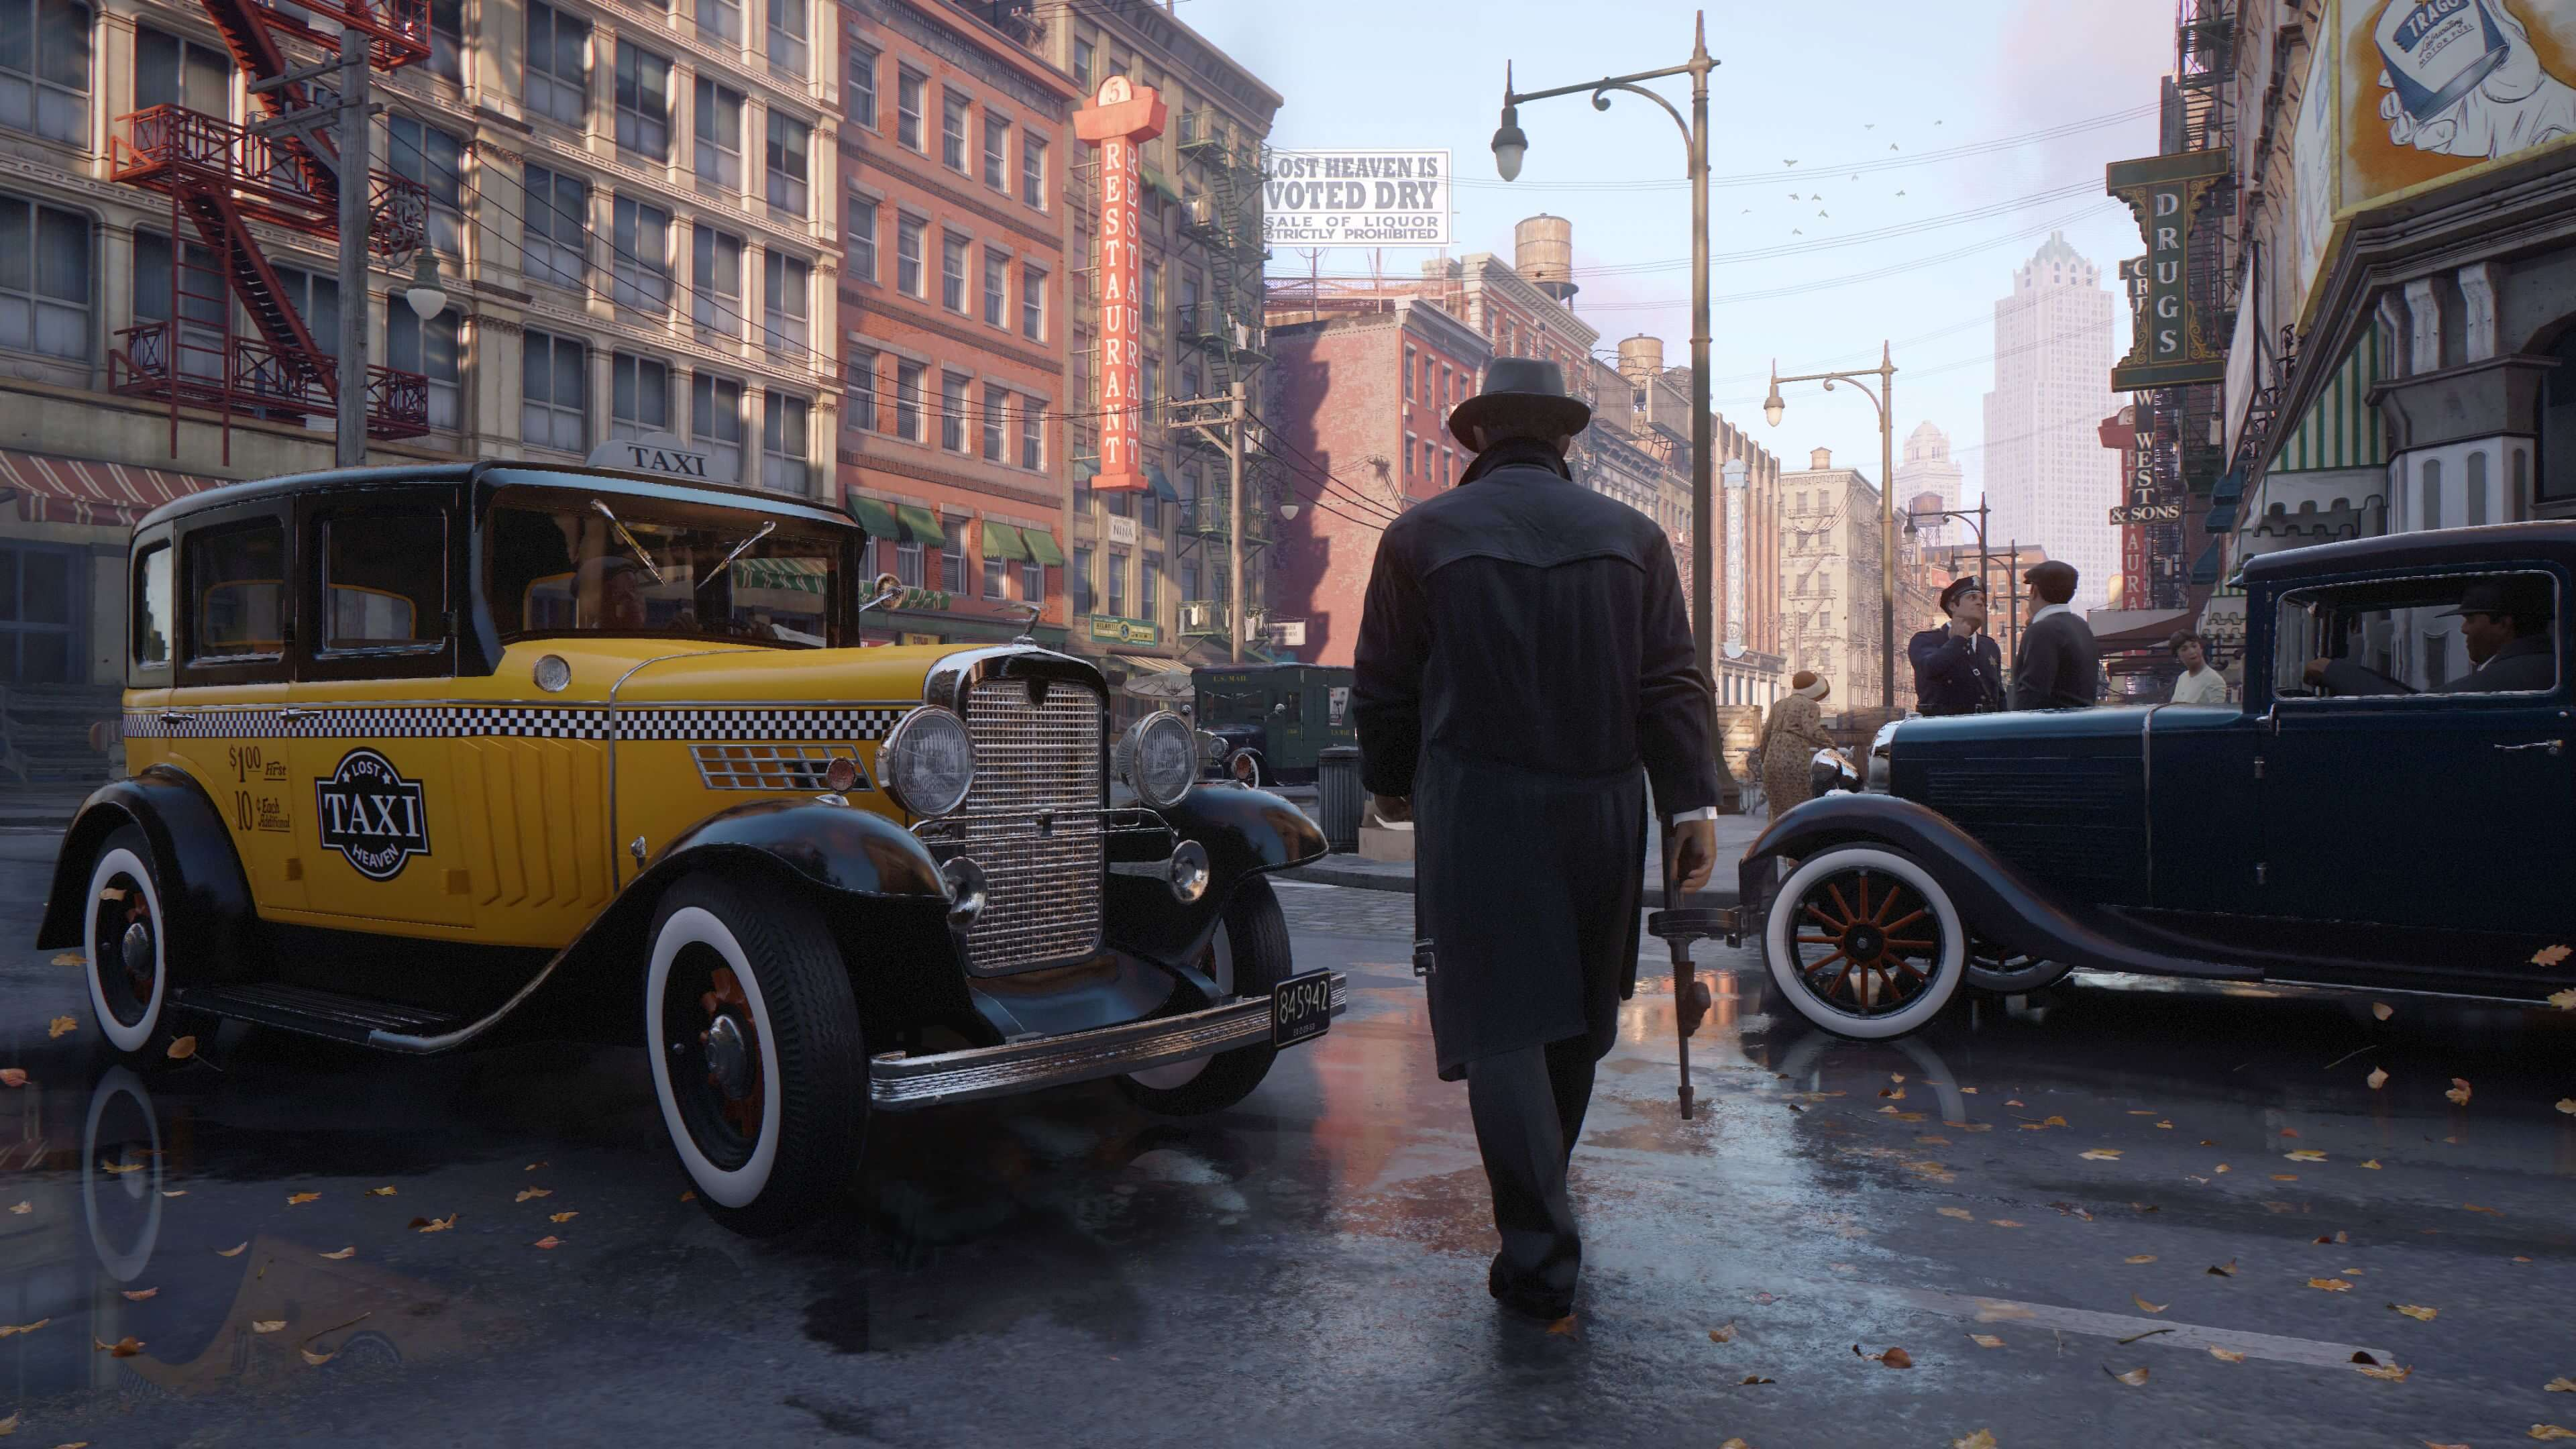 Mafia: Definitive Edition Receives New Trailer, Life of a Gangster